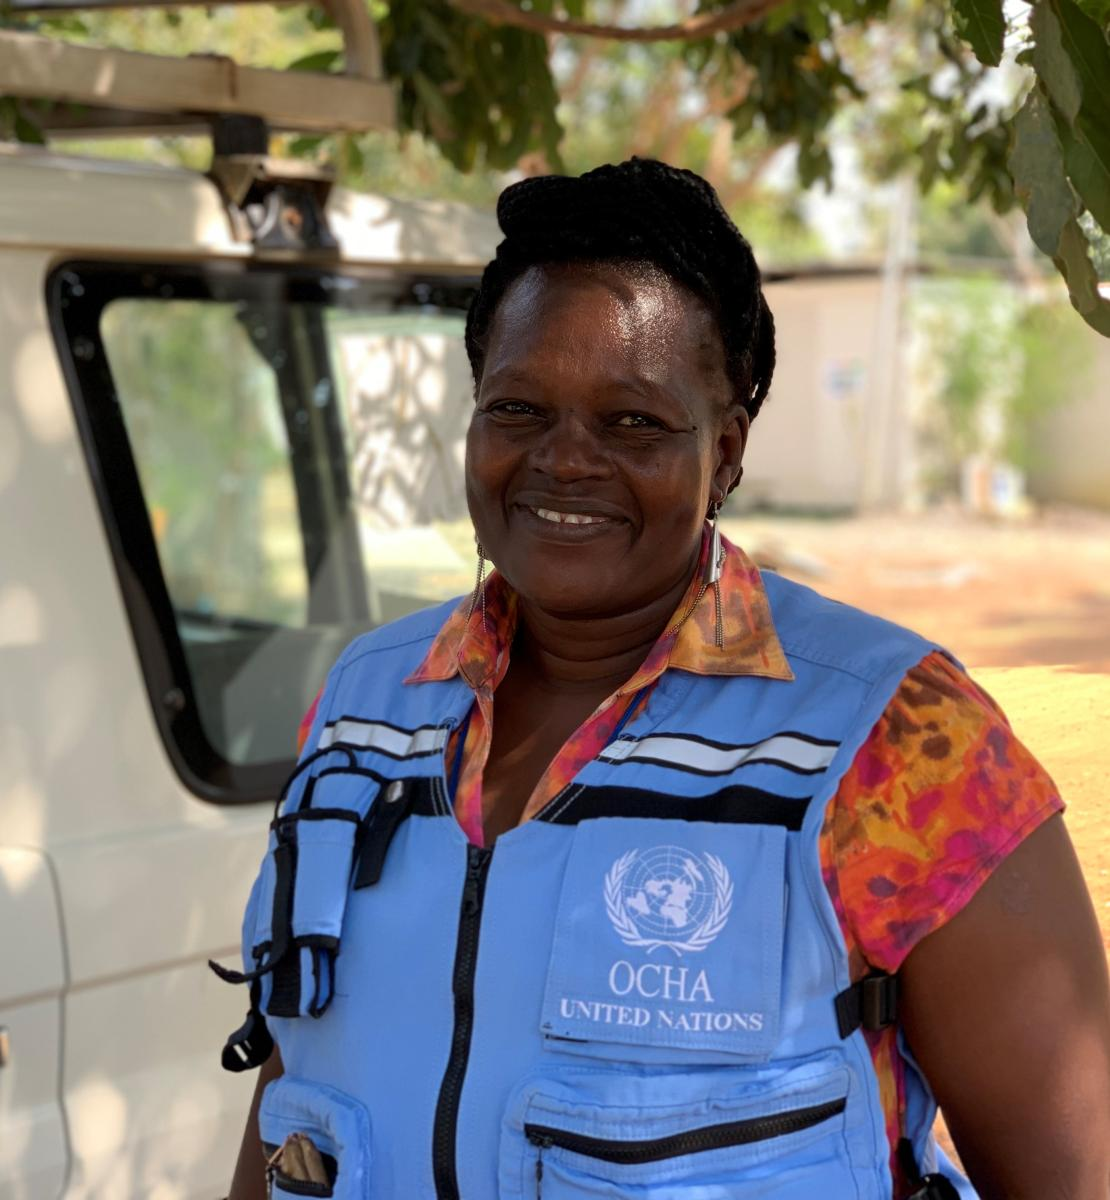 A woman in a light blue United Nations vest smiles at the camera.